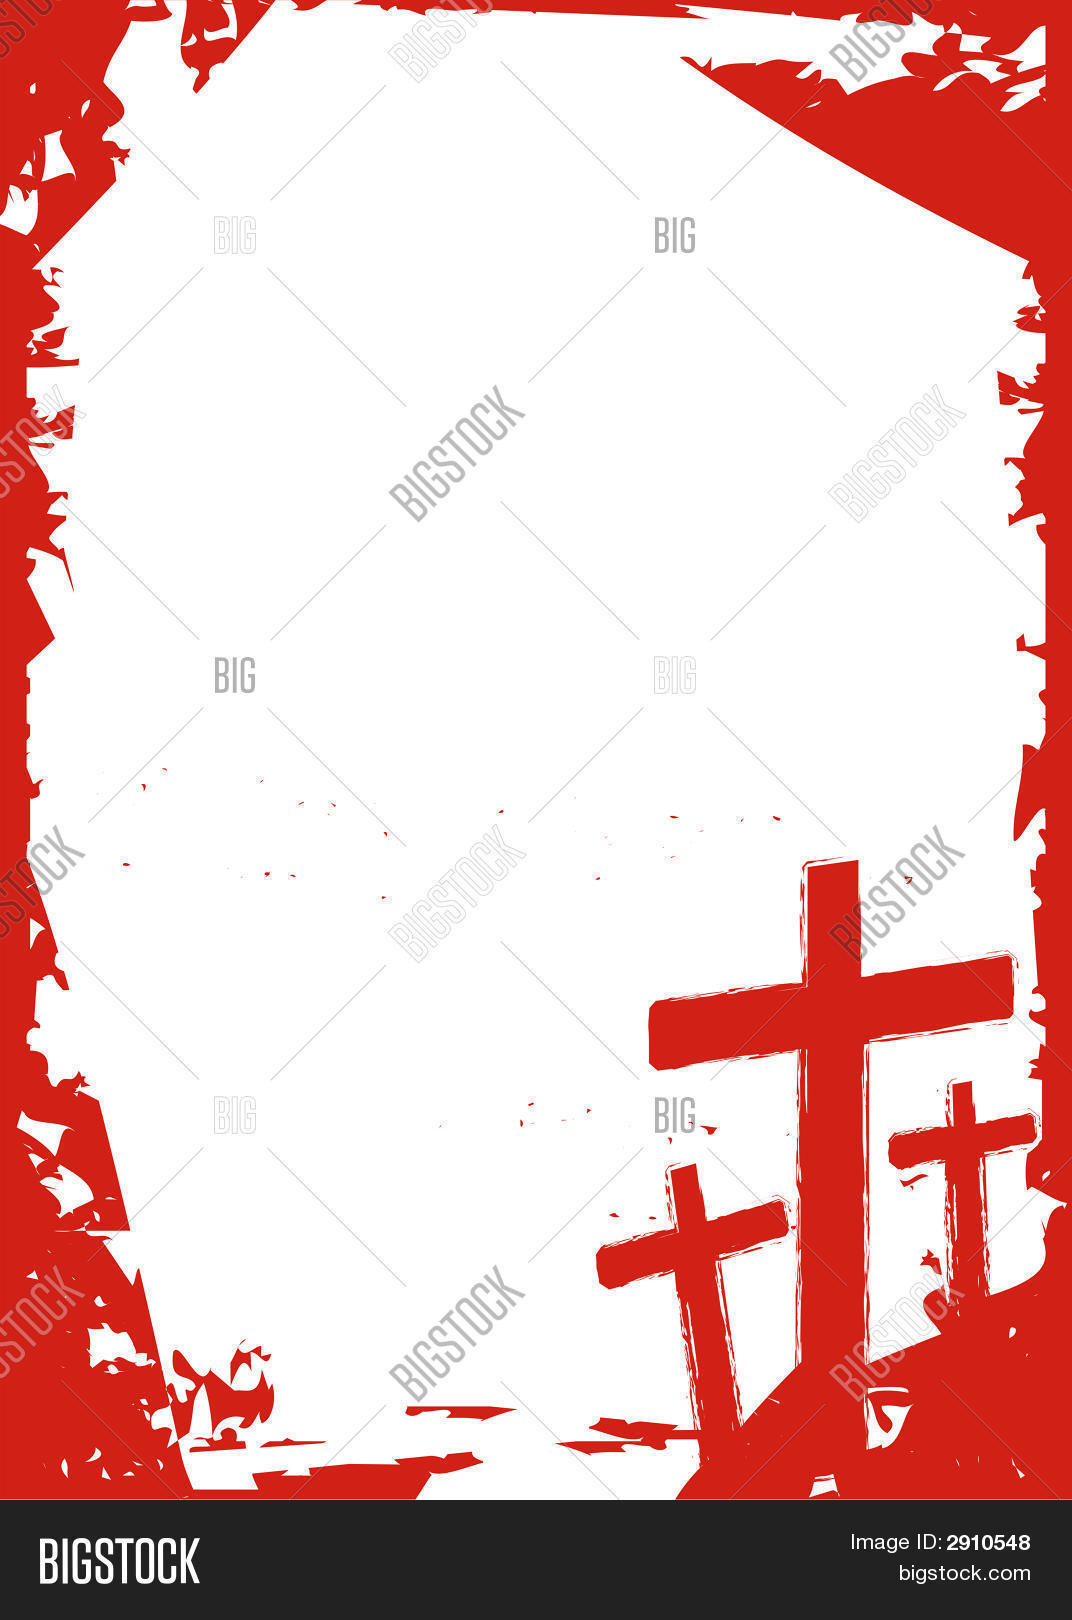 Grunge Cross Frame Vector & Photo | Bigstock